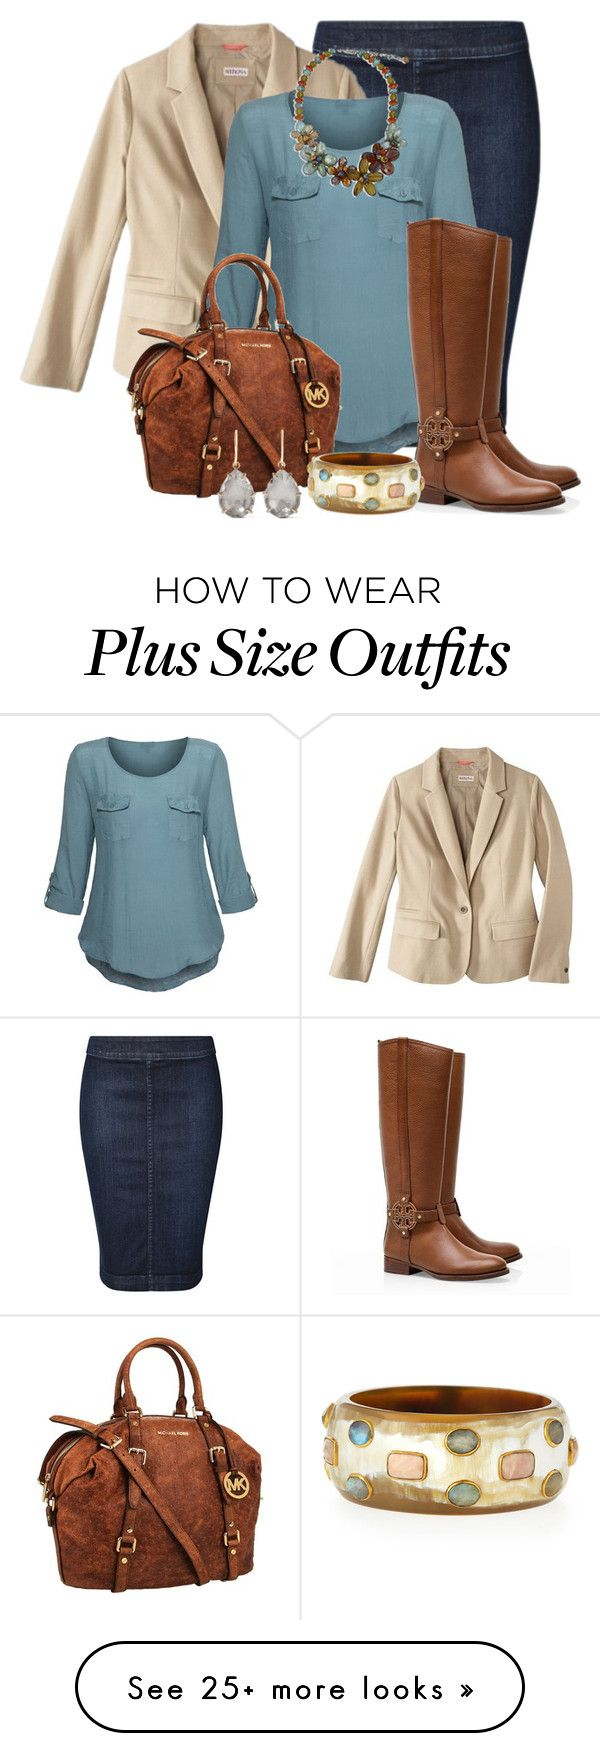 """Fall Outfit -- #Plus Size"" by kimberlyn303 on Polyvore featuring Dex, Merona, Tory Burch, MICHAEL Michael Kors, Ashley Pittman and Larkspur & Hawk"